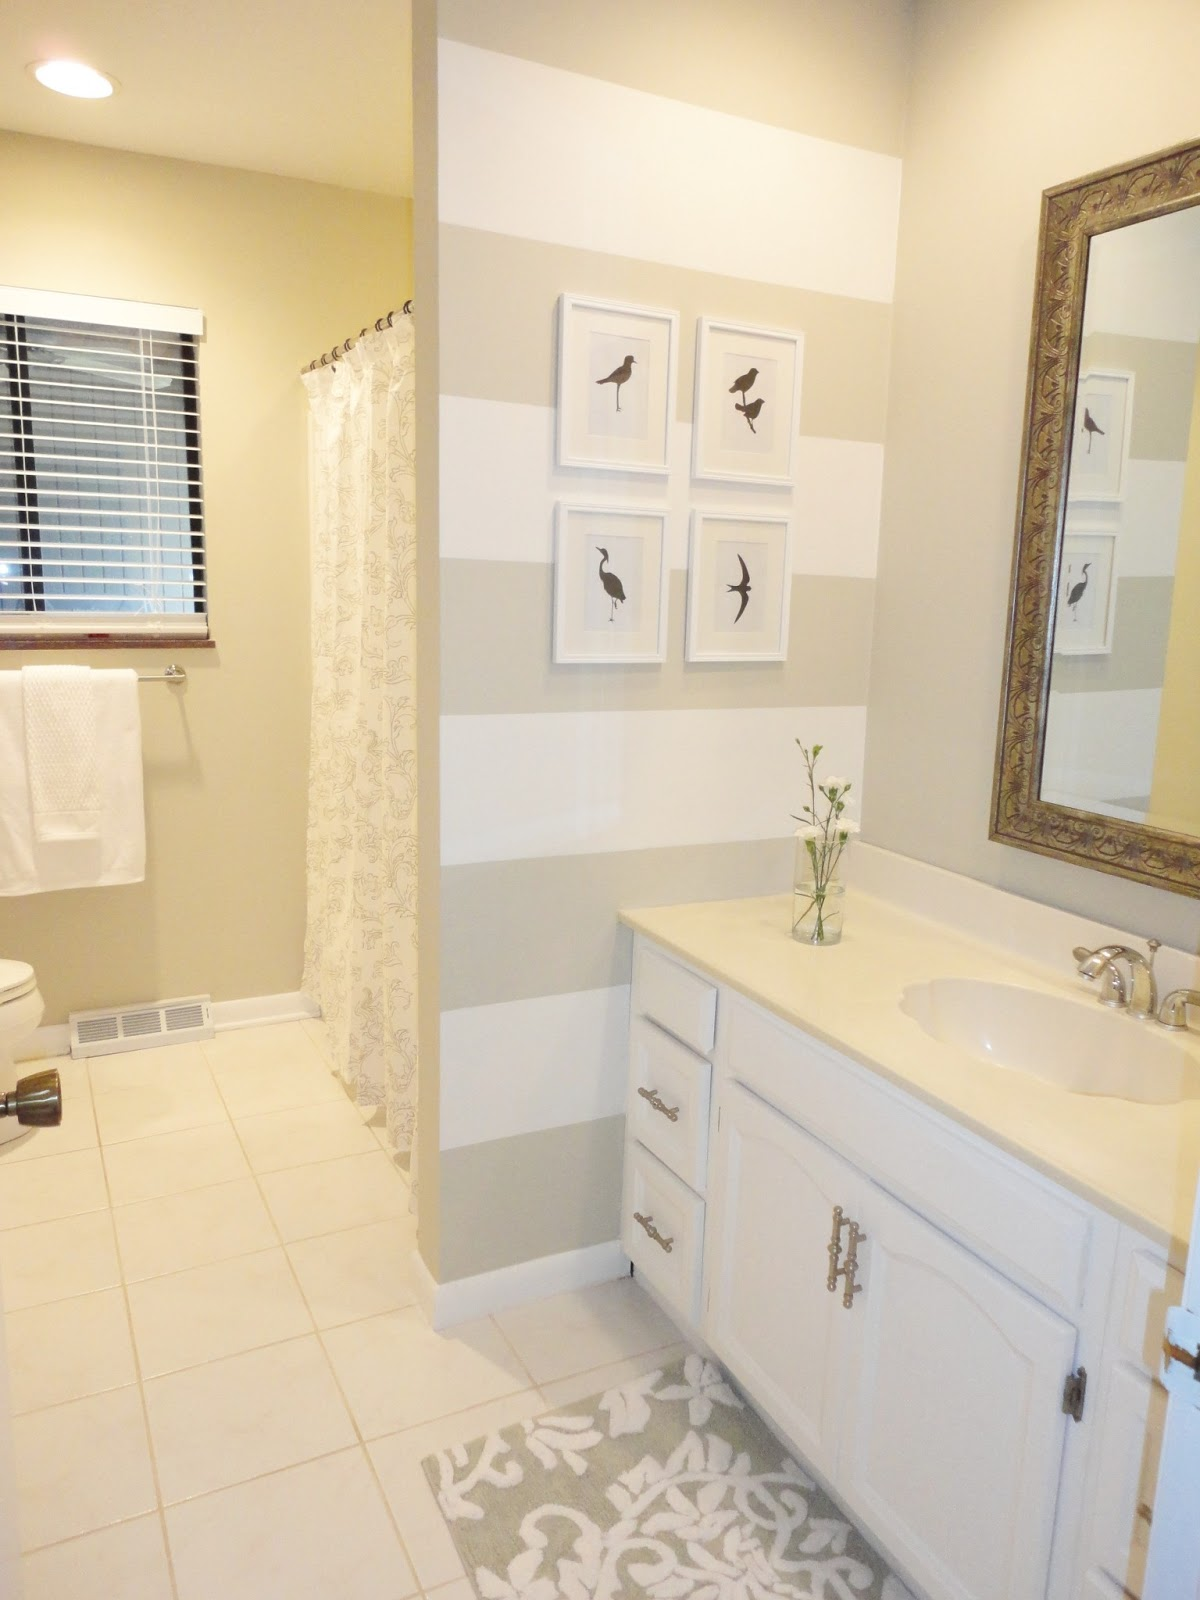 LiveLoveDIY: Our Guest Bathroom Makeover